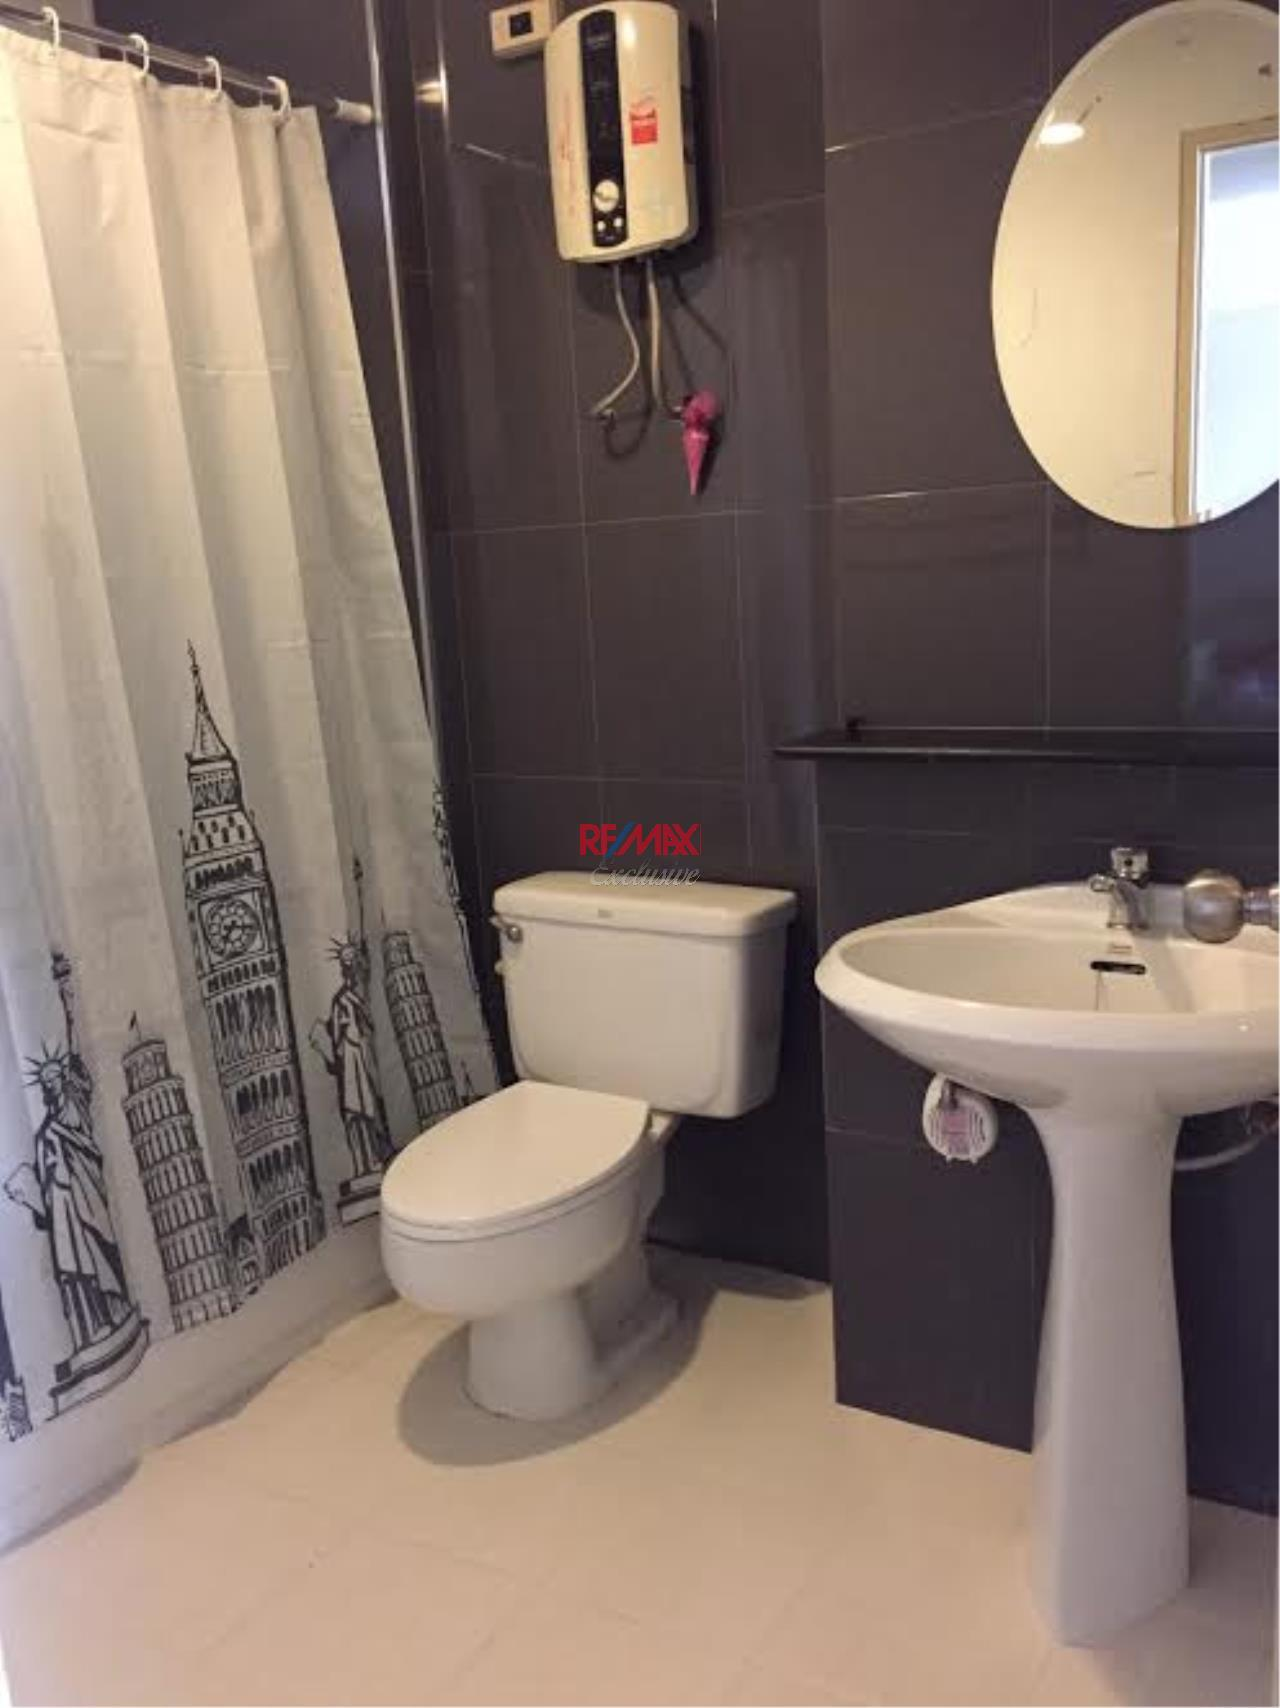 RE/MAX Exclusive Agency's Waterford Diamond, 2 Bedrooms, 1 Bathroom, For Rent 30,000 THB, For Sale 6,500,000 THB 5